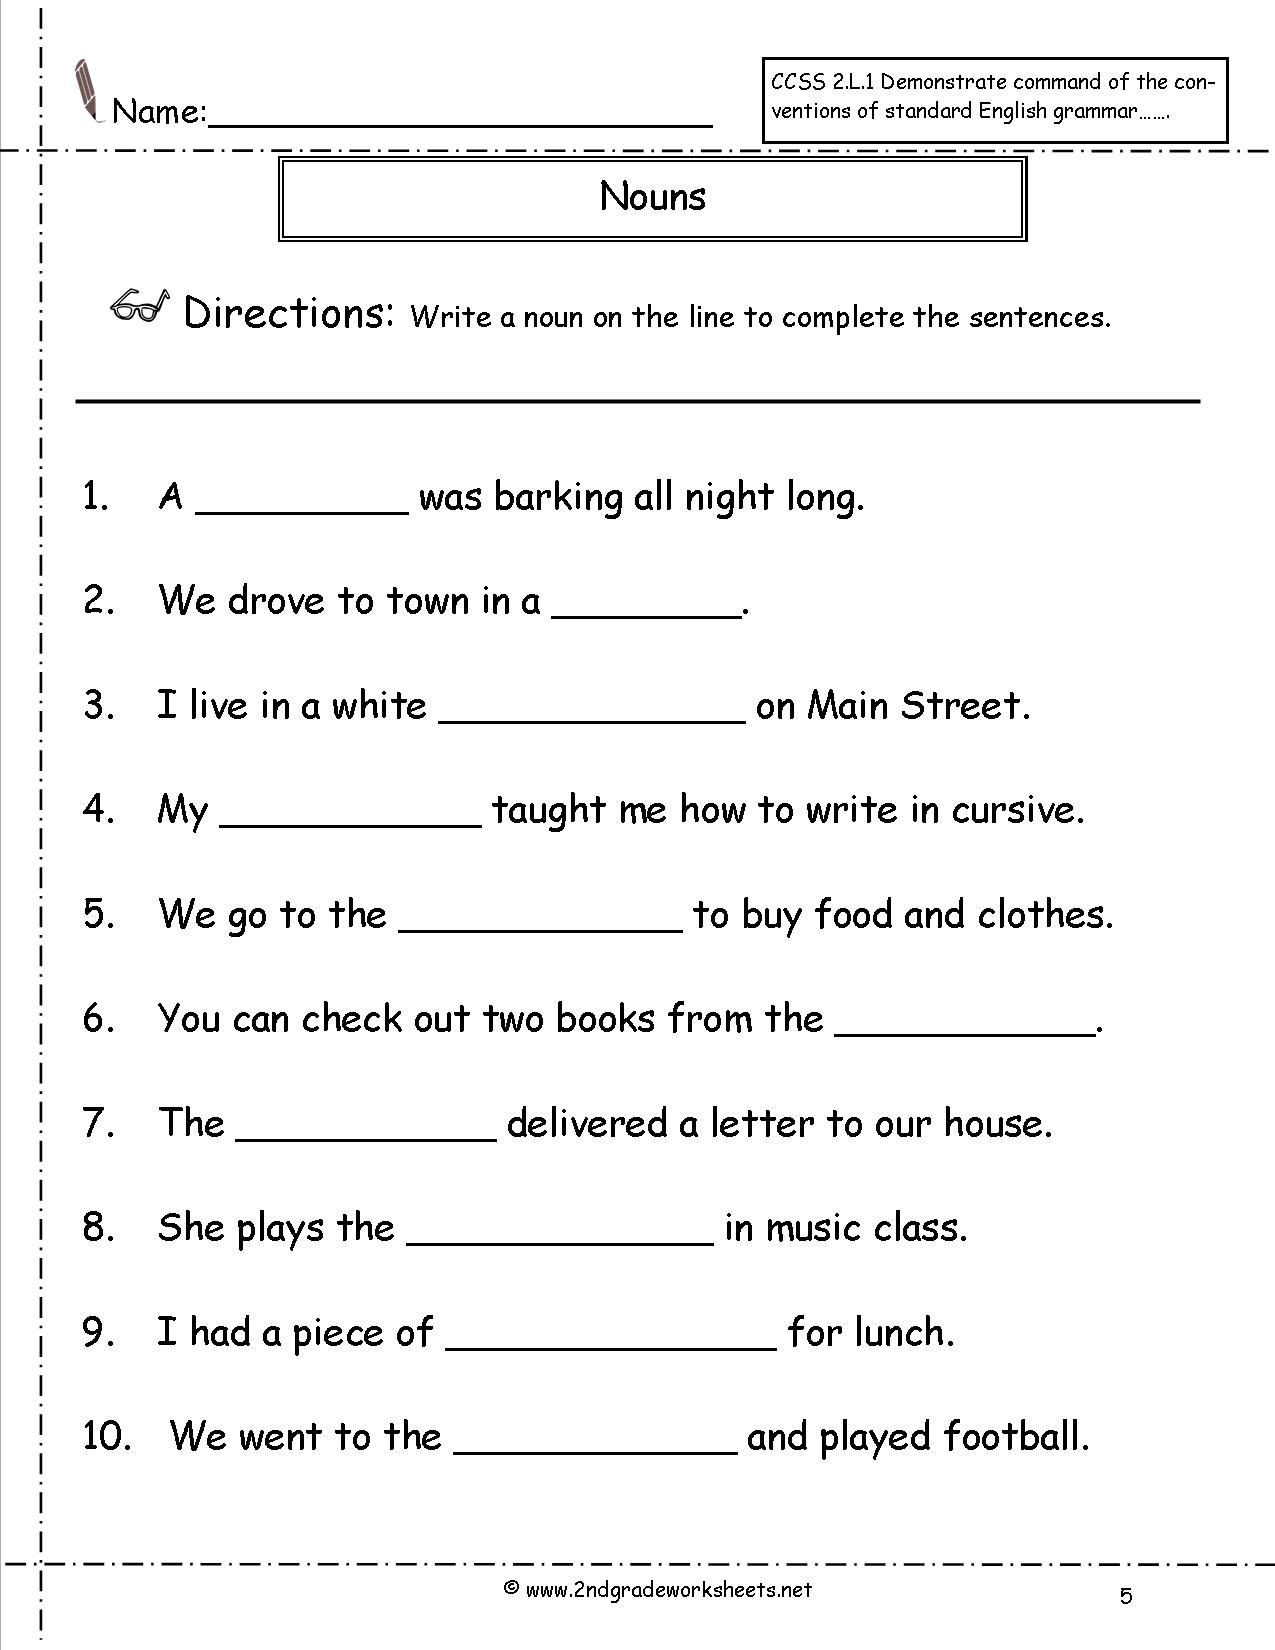 Homophones Worksheets for Grade 5 11 Best Homophones Worksheets for Grade 1 Images On Best